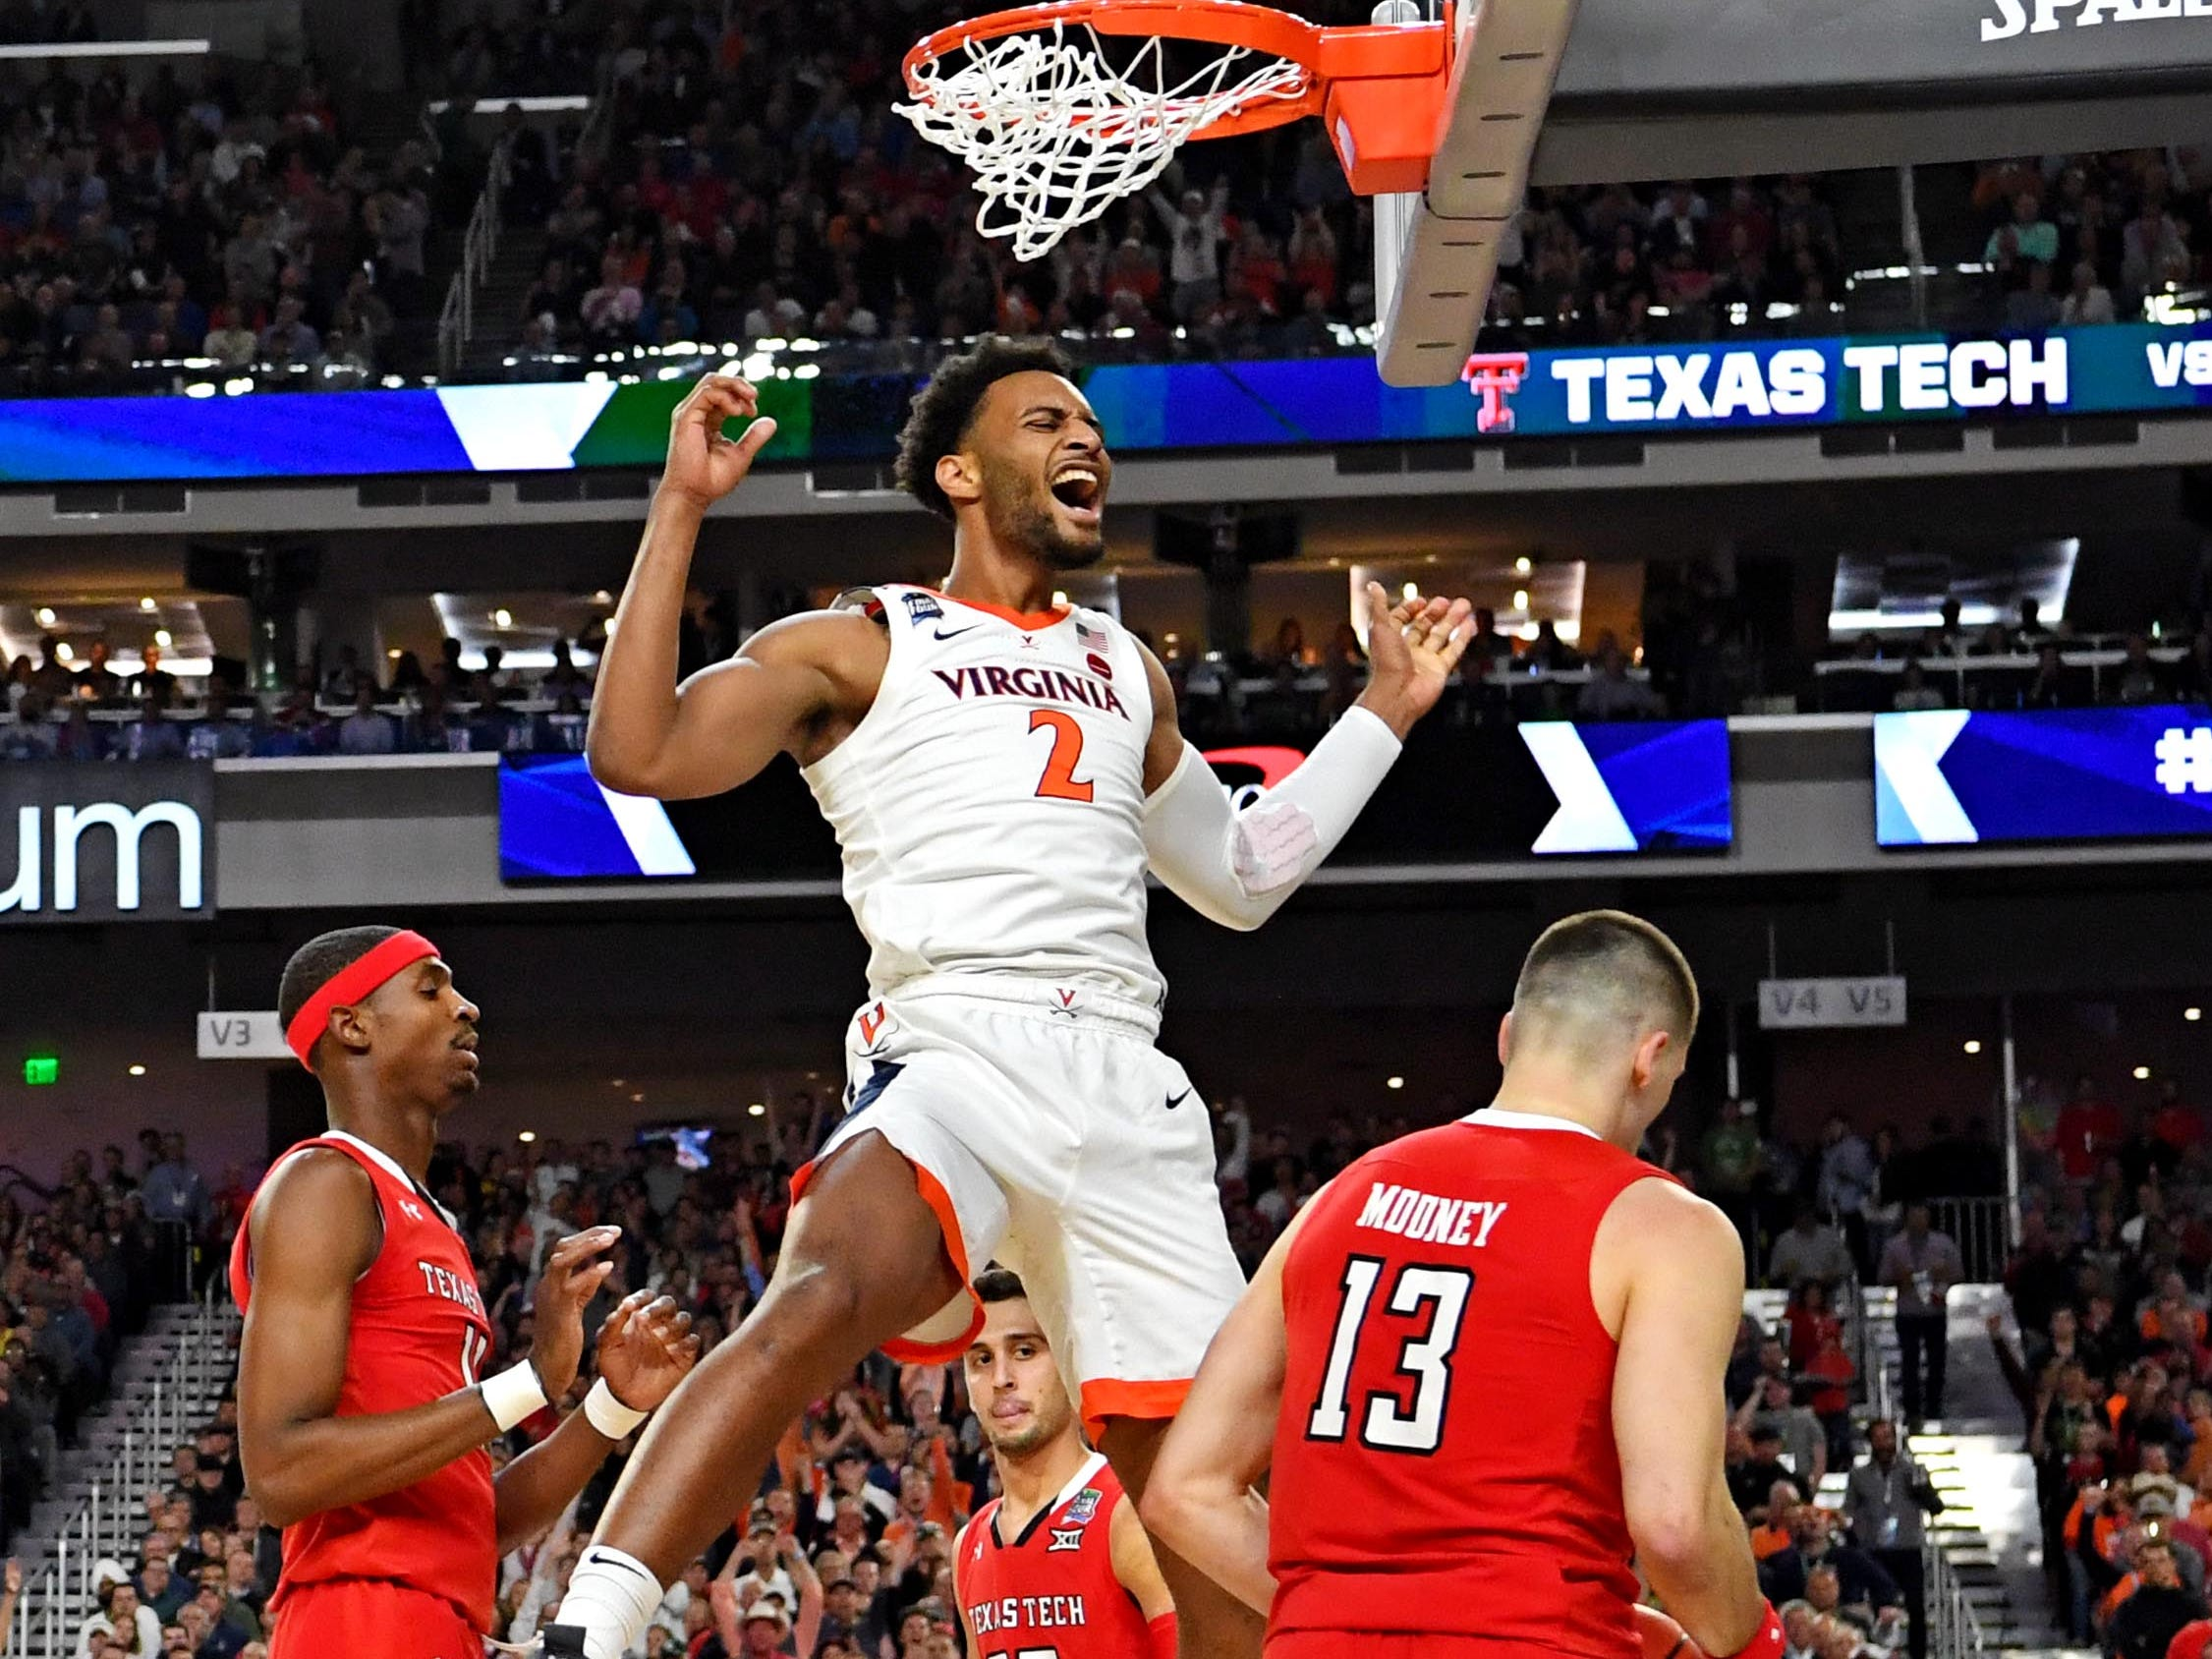 Virginia's Braxton Key dunks the ball against Texas Tech during the first half in the championship game.